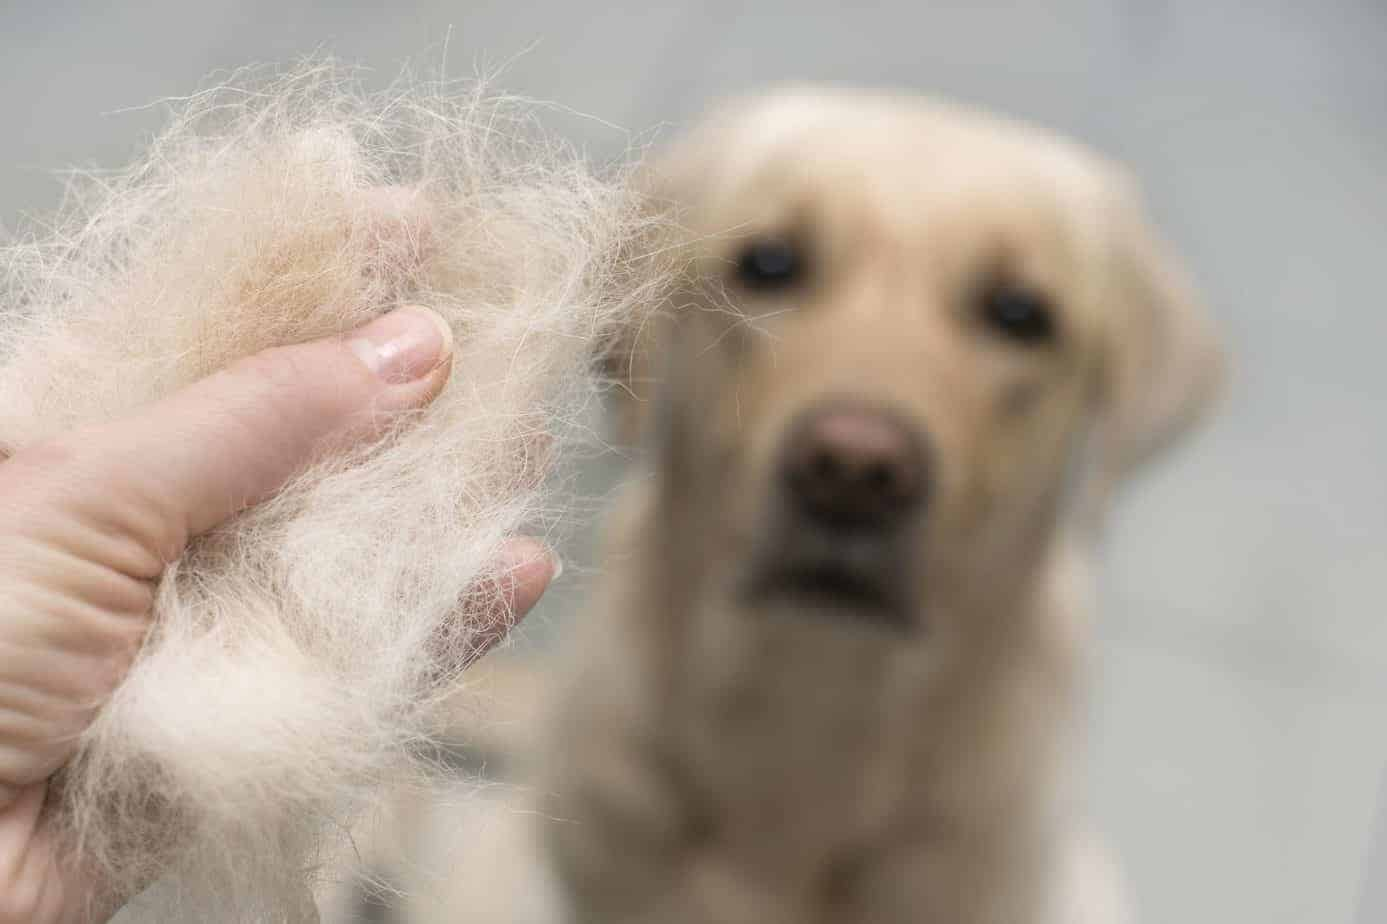 Owner holds hair from a Labrador retriever. Shedding is normal, but severe hair loss or bald spots show your pet has a serious health issue. Stress, hormones, and flea allergies all cause hair loss.